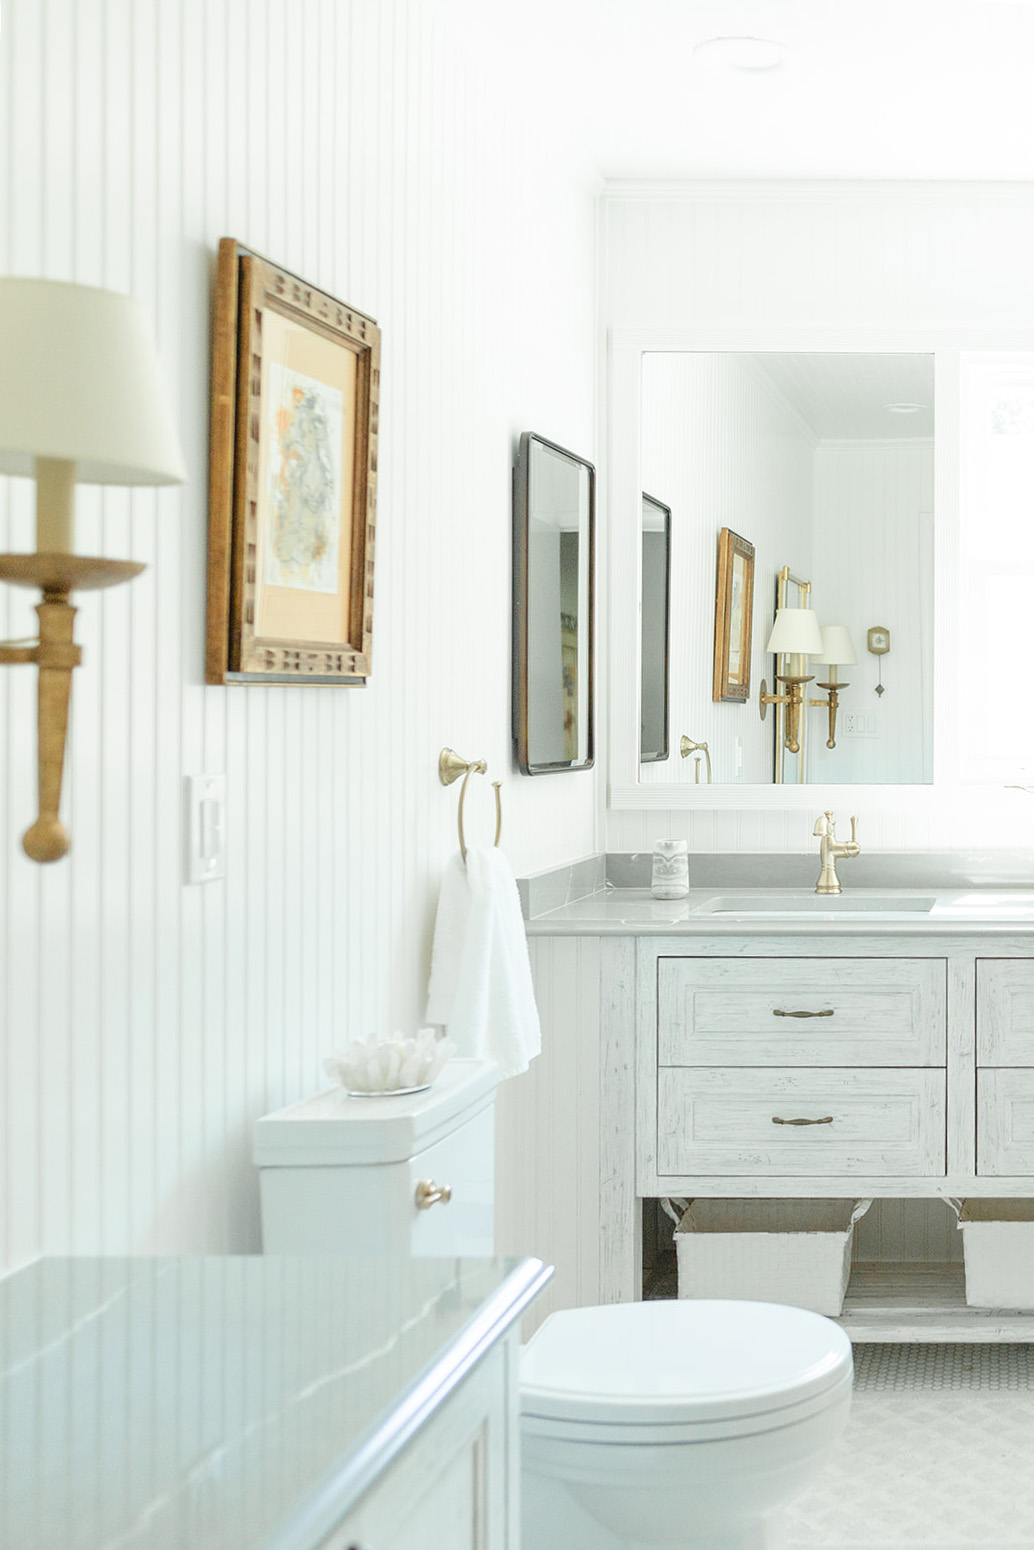 mirror reflecting sconces.jpg